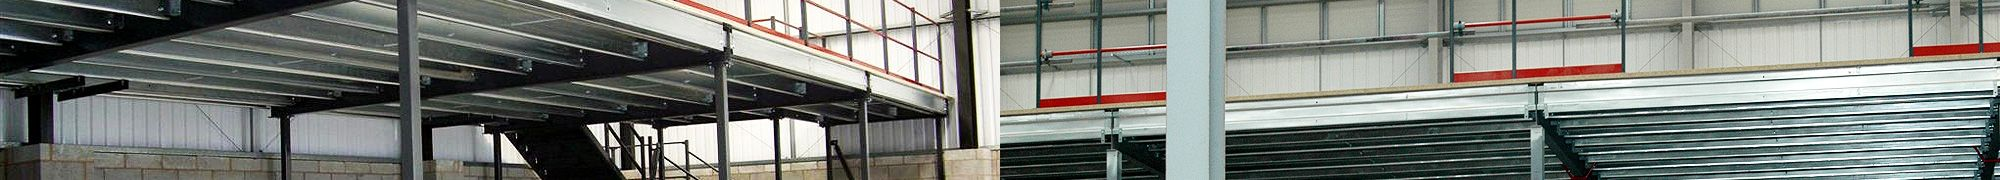 Mezzanine Floor Costs - How much to manufacture & install